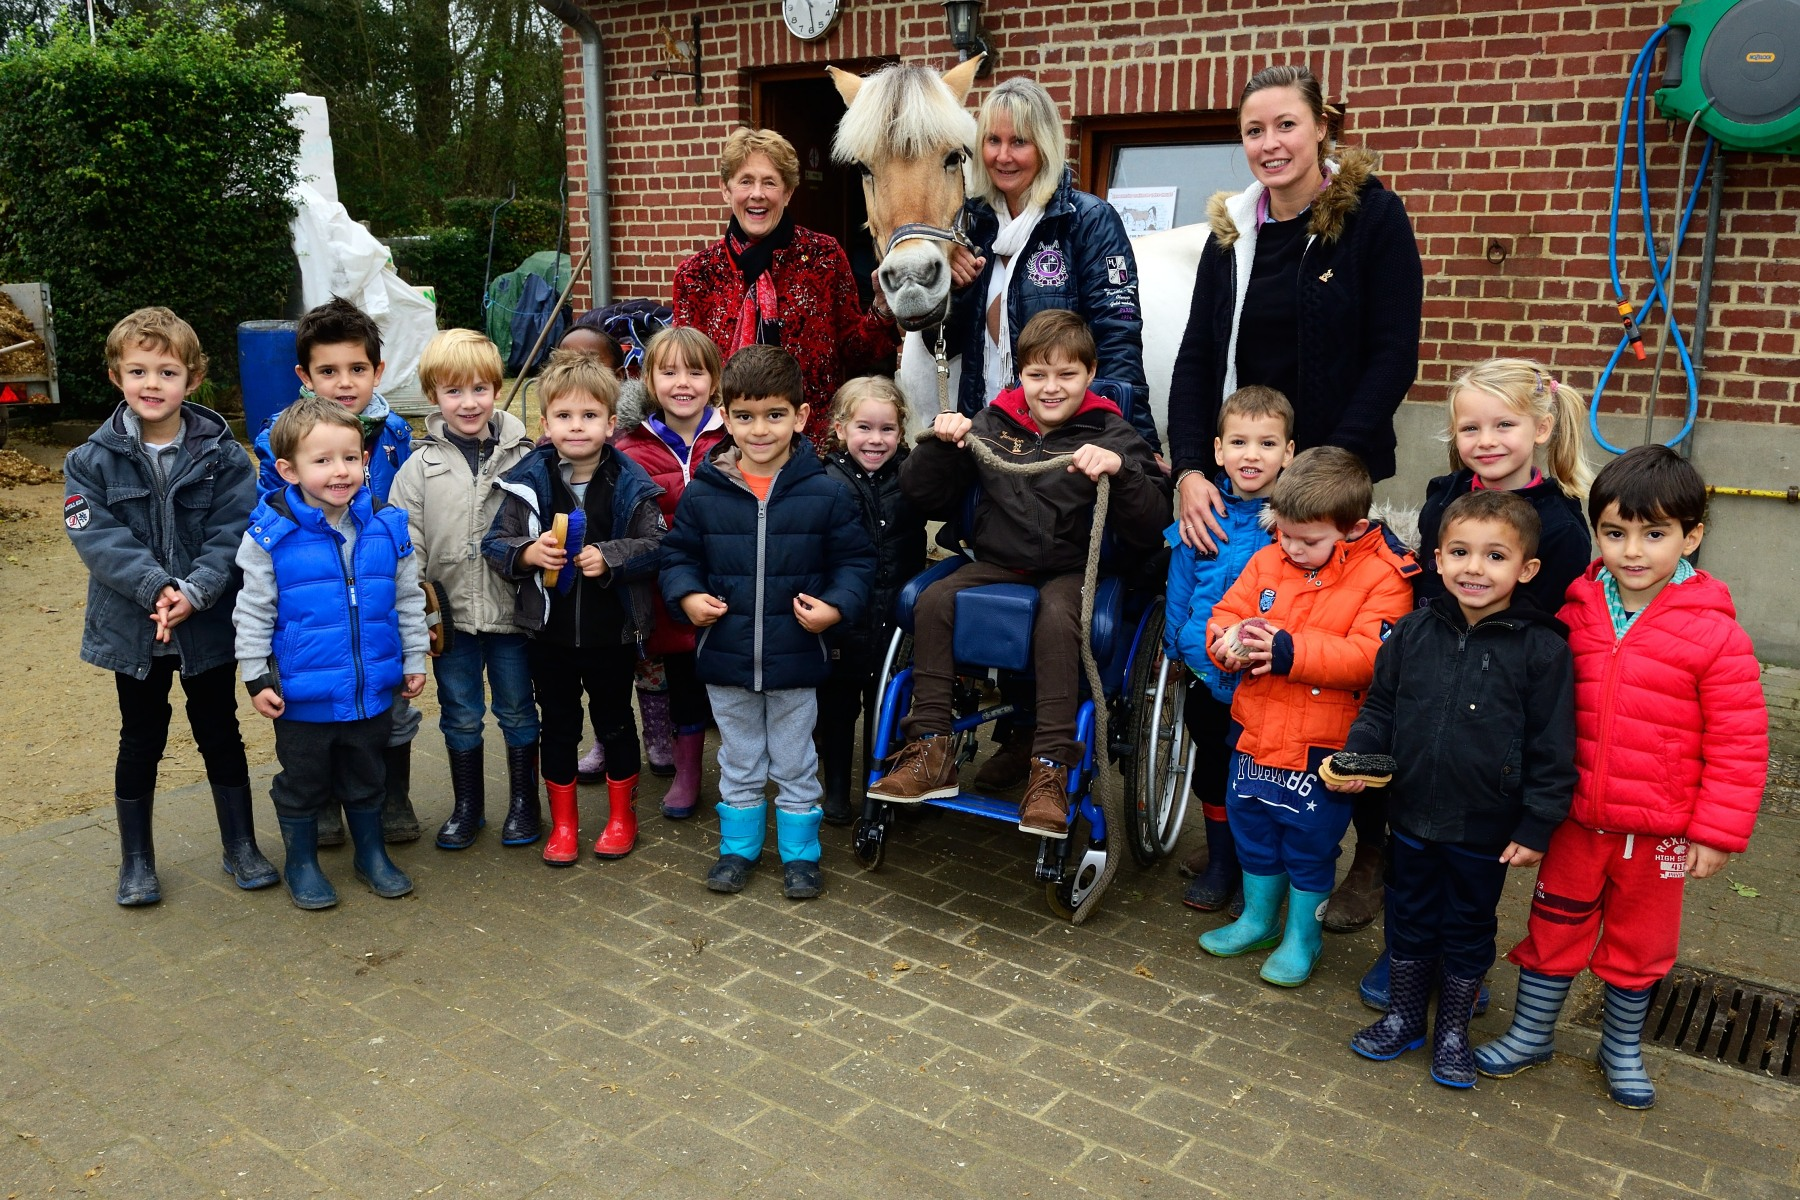 Her Excellency with children and staff from Pony Paradise